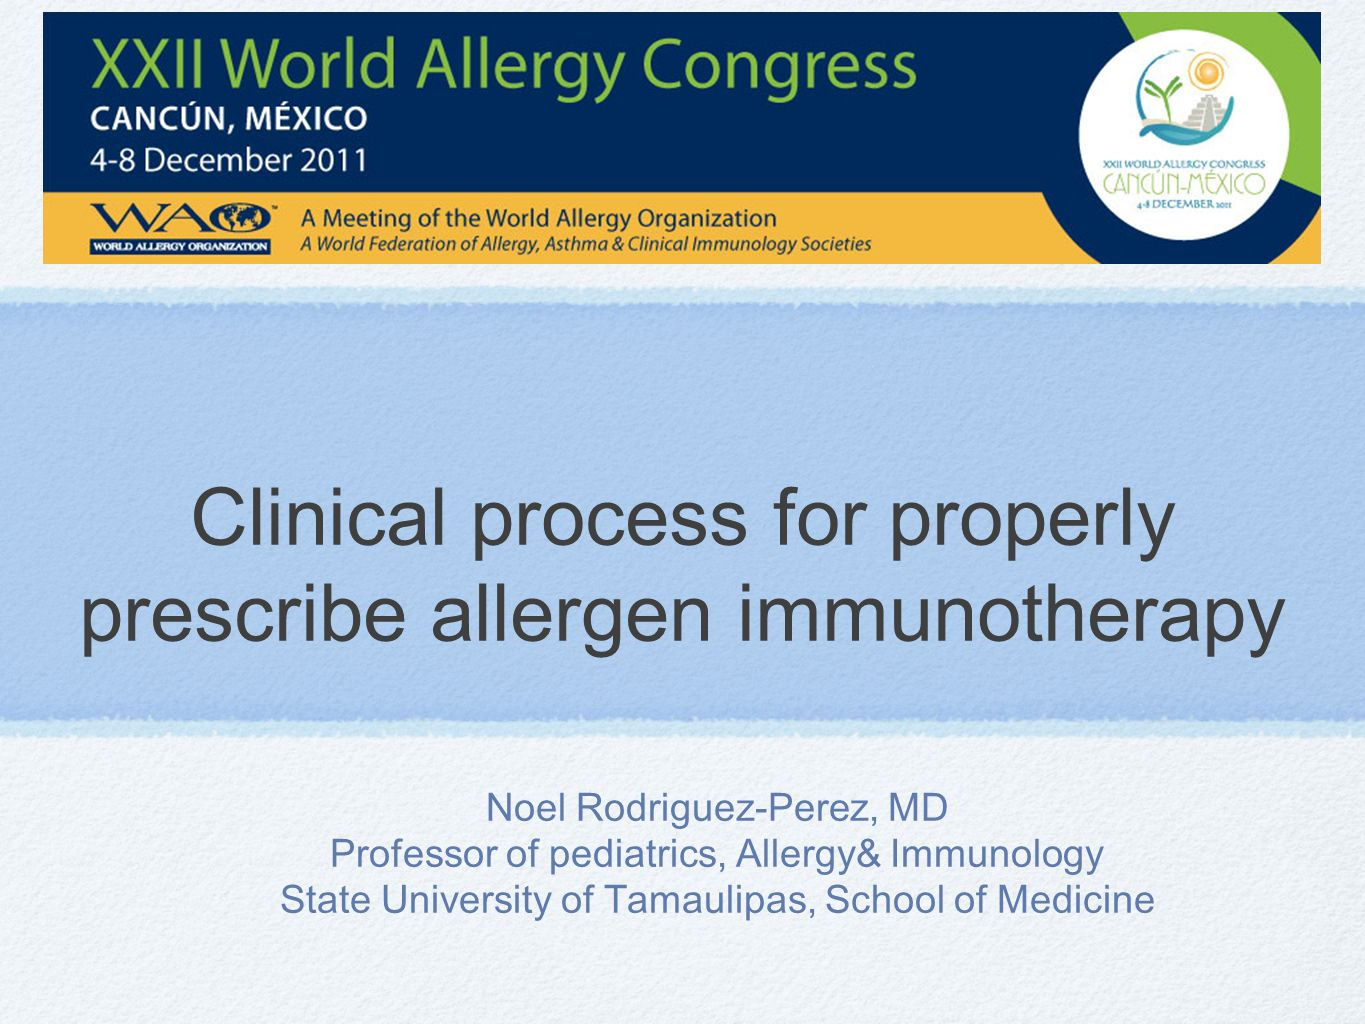 Clinical process for properly prescribe allergen immunotherapy Noel Rodriguez-Perez, MD Professor of pediatrics, Allergy& Immunology State University